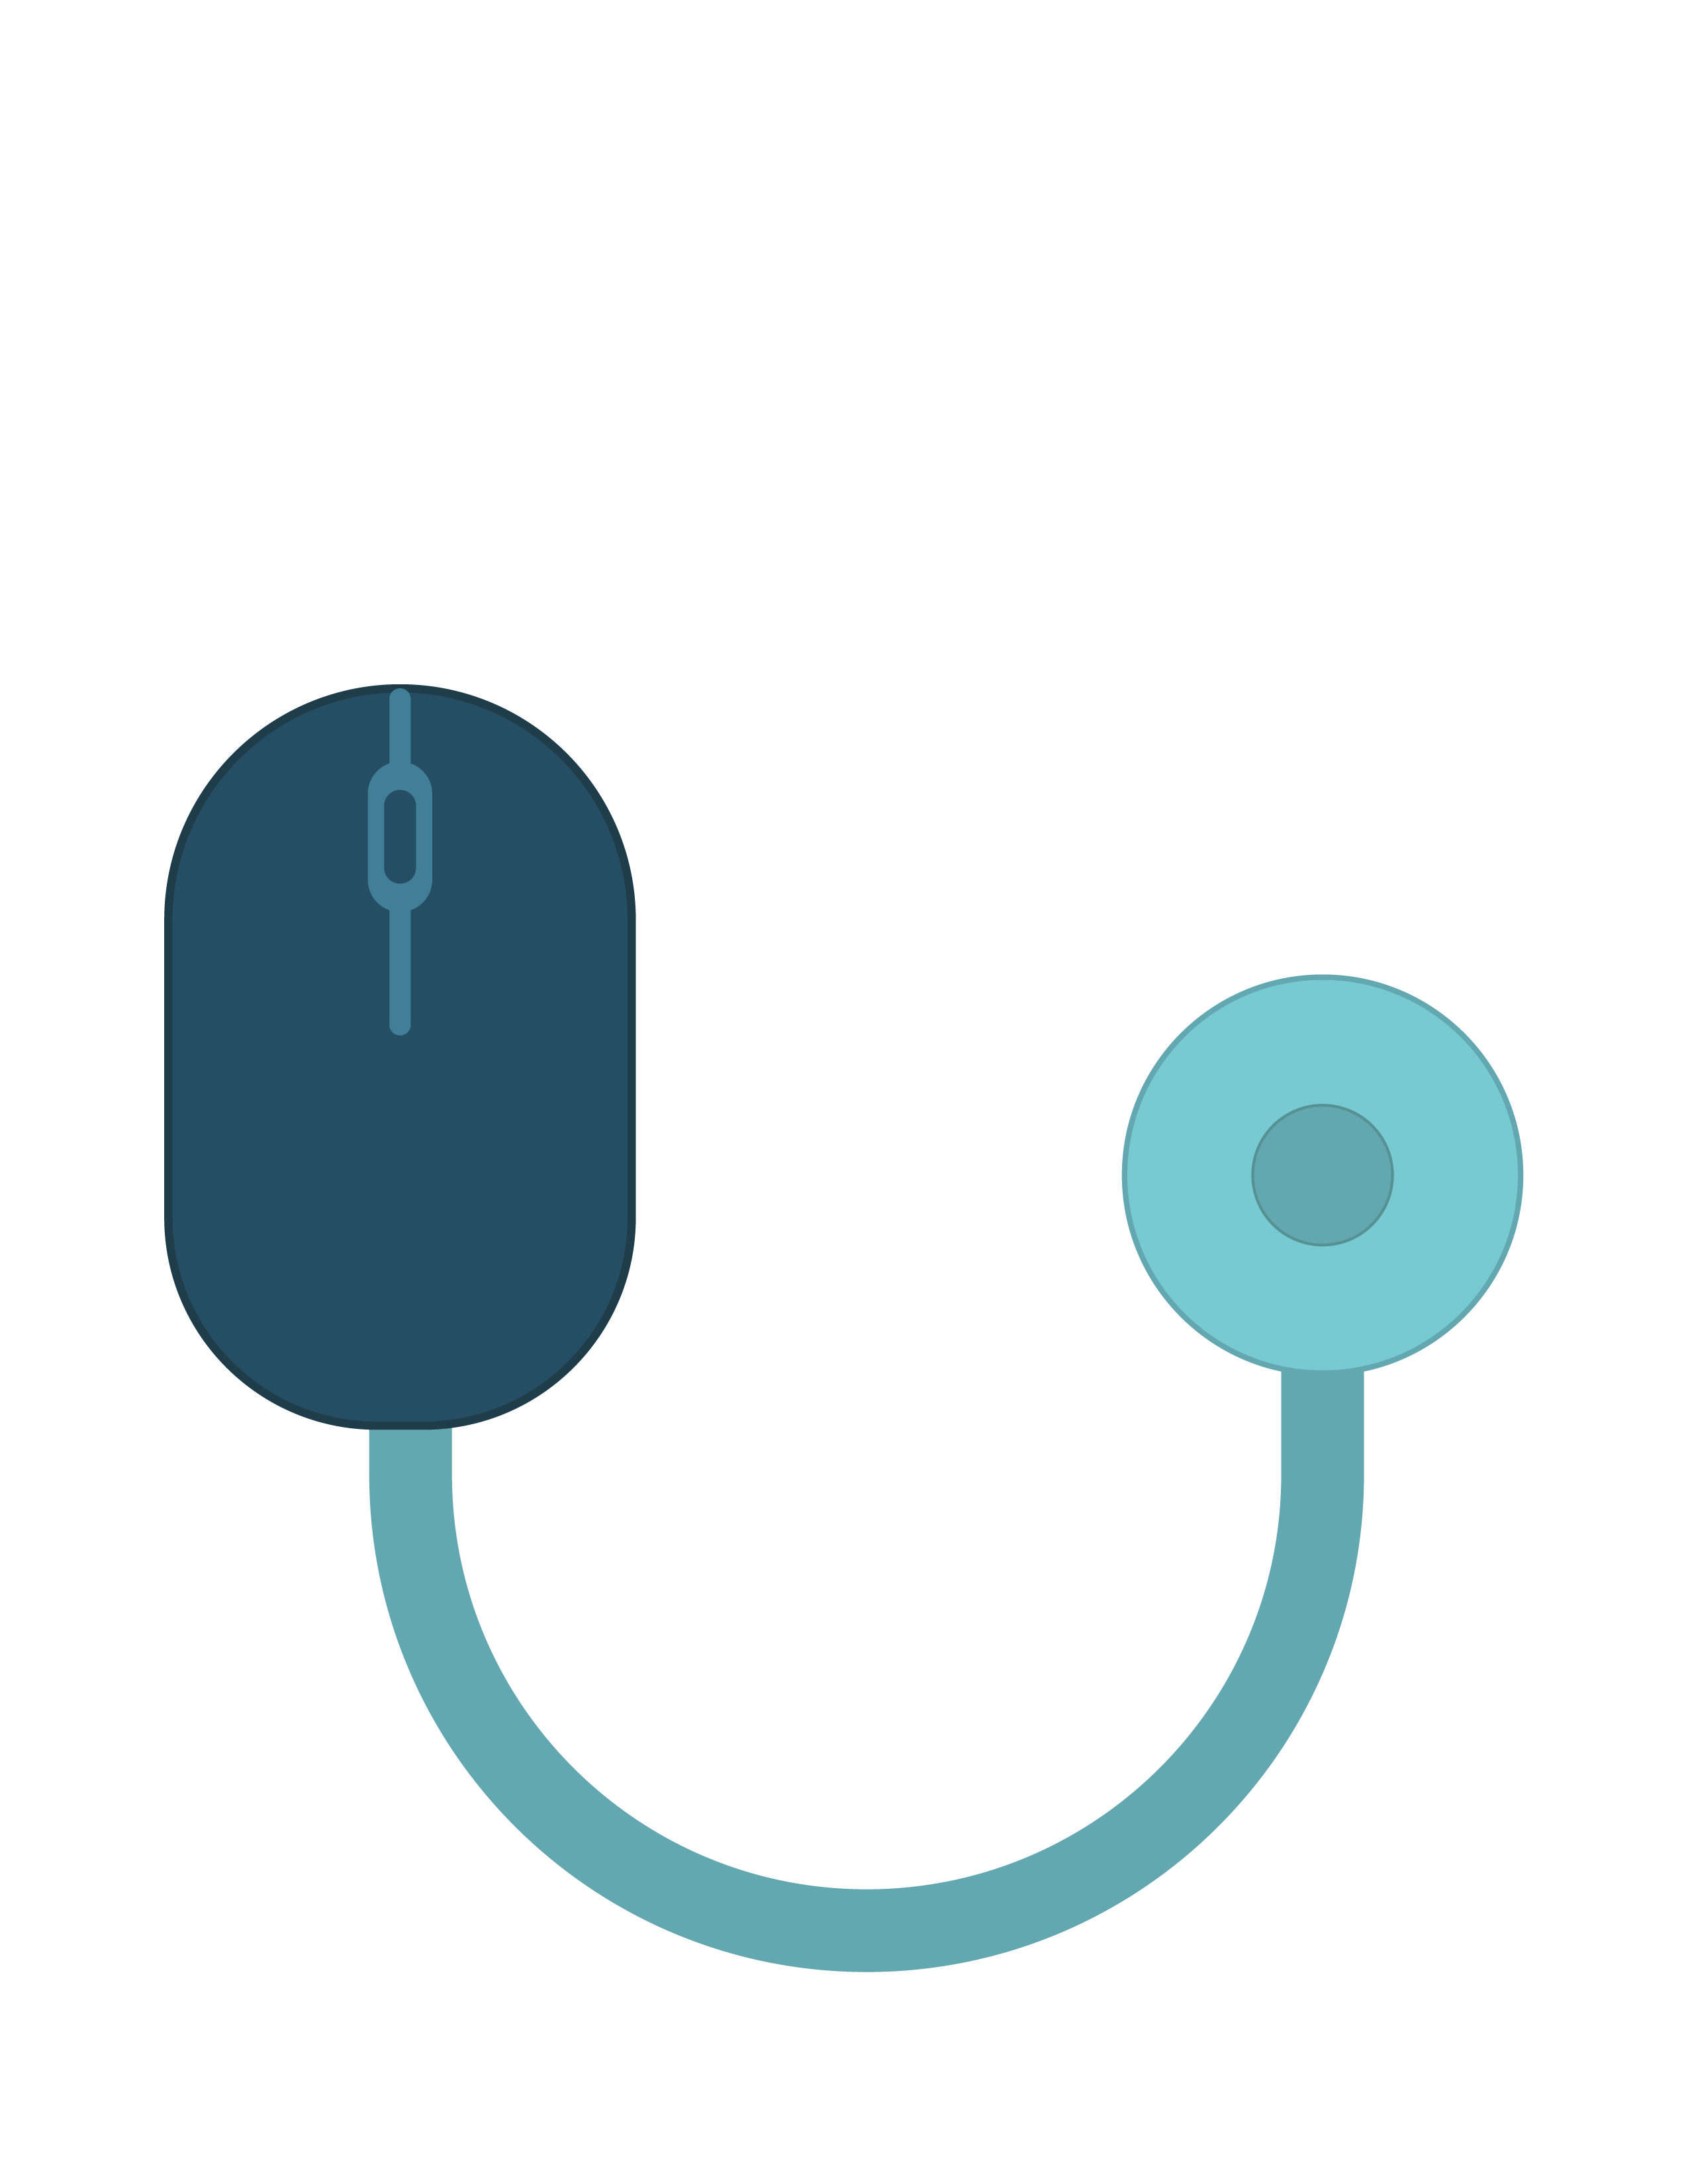 An illustration of a stethoscope with a computer mouse attached to one end